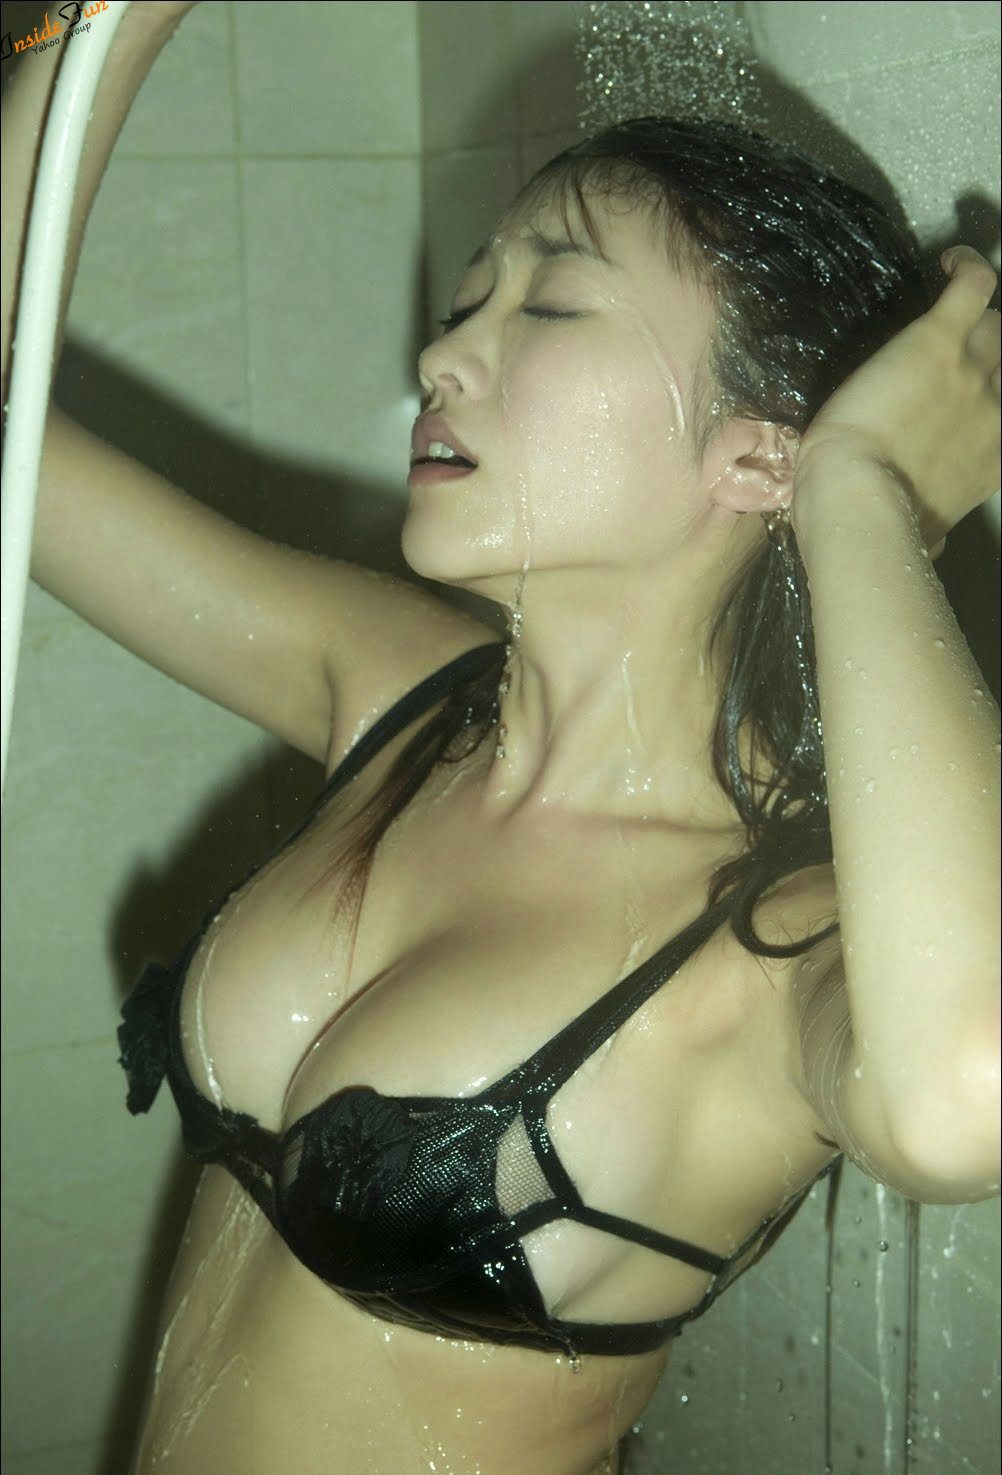 http://2.bp.blogspot.com/-_Jr_UnV2wh0/Tg2EIH5DZpI/AAAAAAAAAw0/obRFwMZsOJo/s1600/Mikie_Hara_YS_Web_Black_Bra_Panties_Shower_Photo_402.jpg